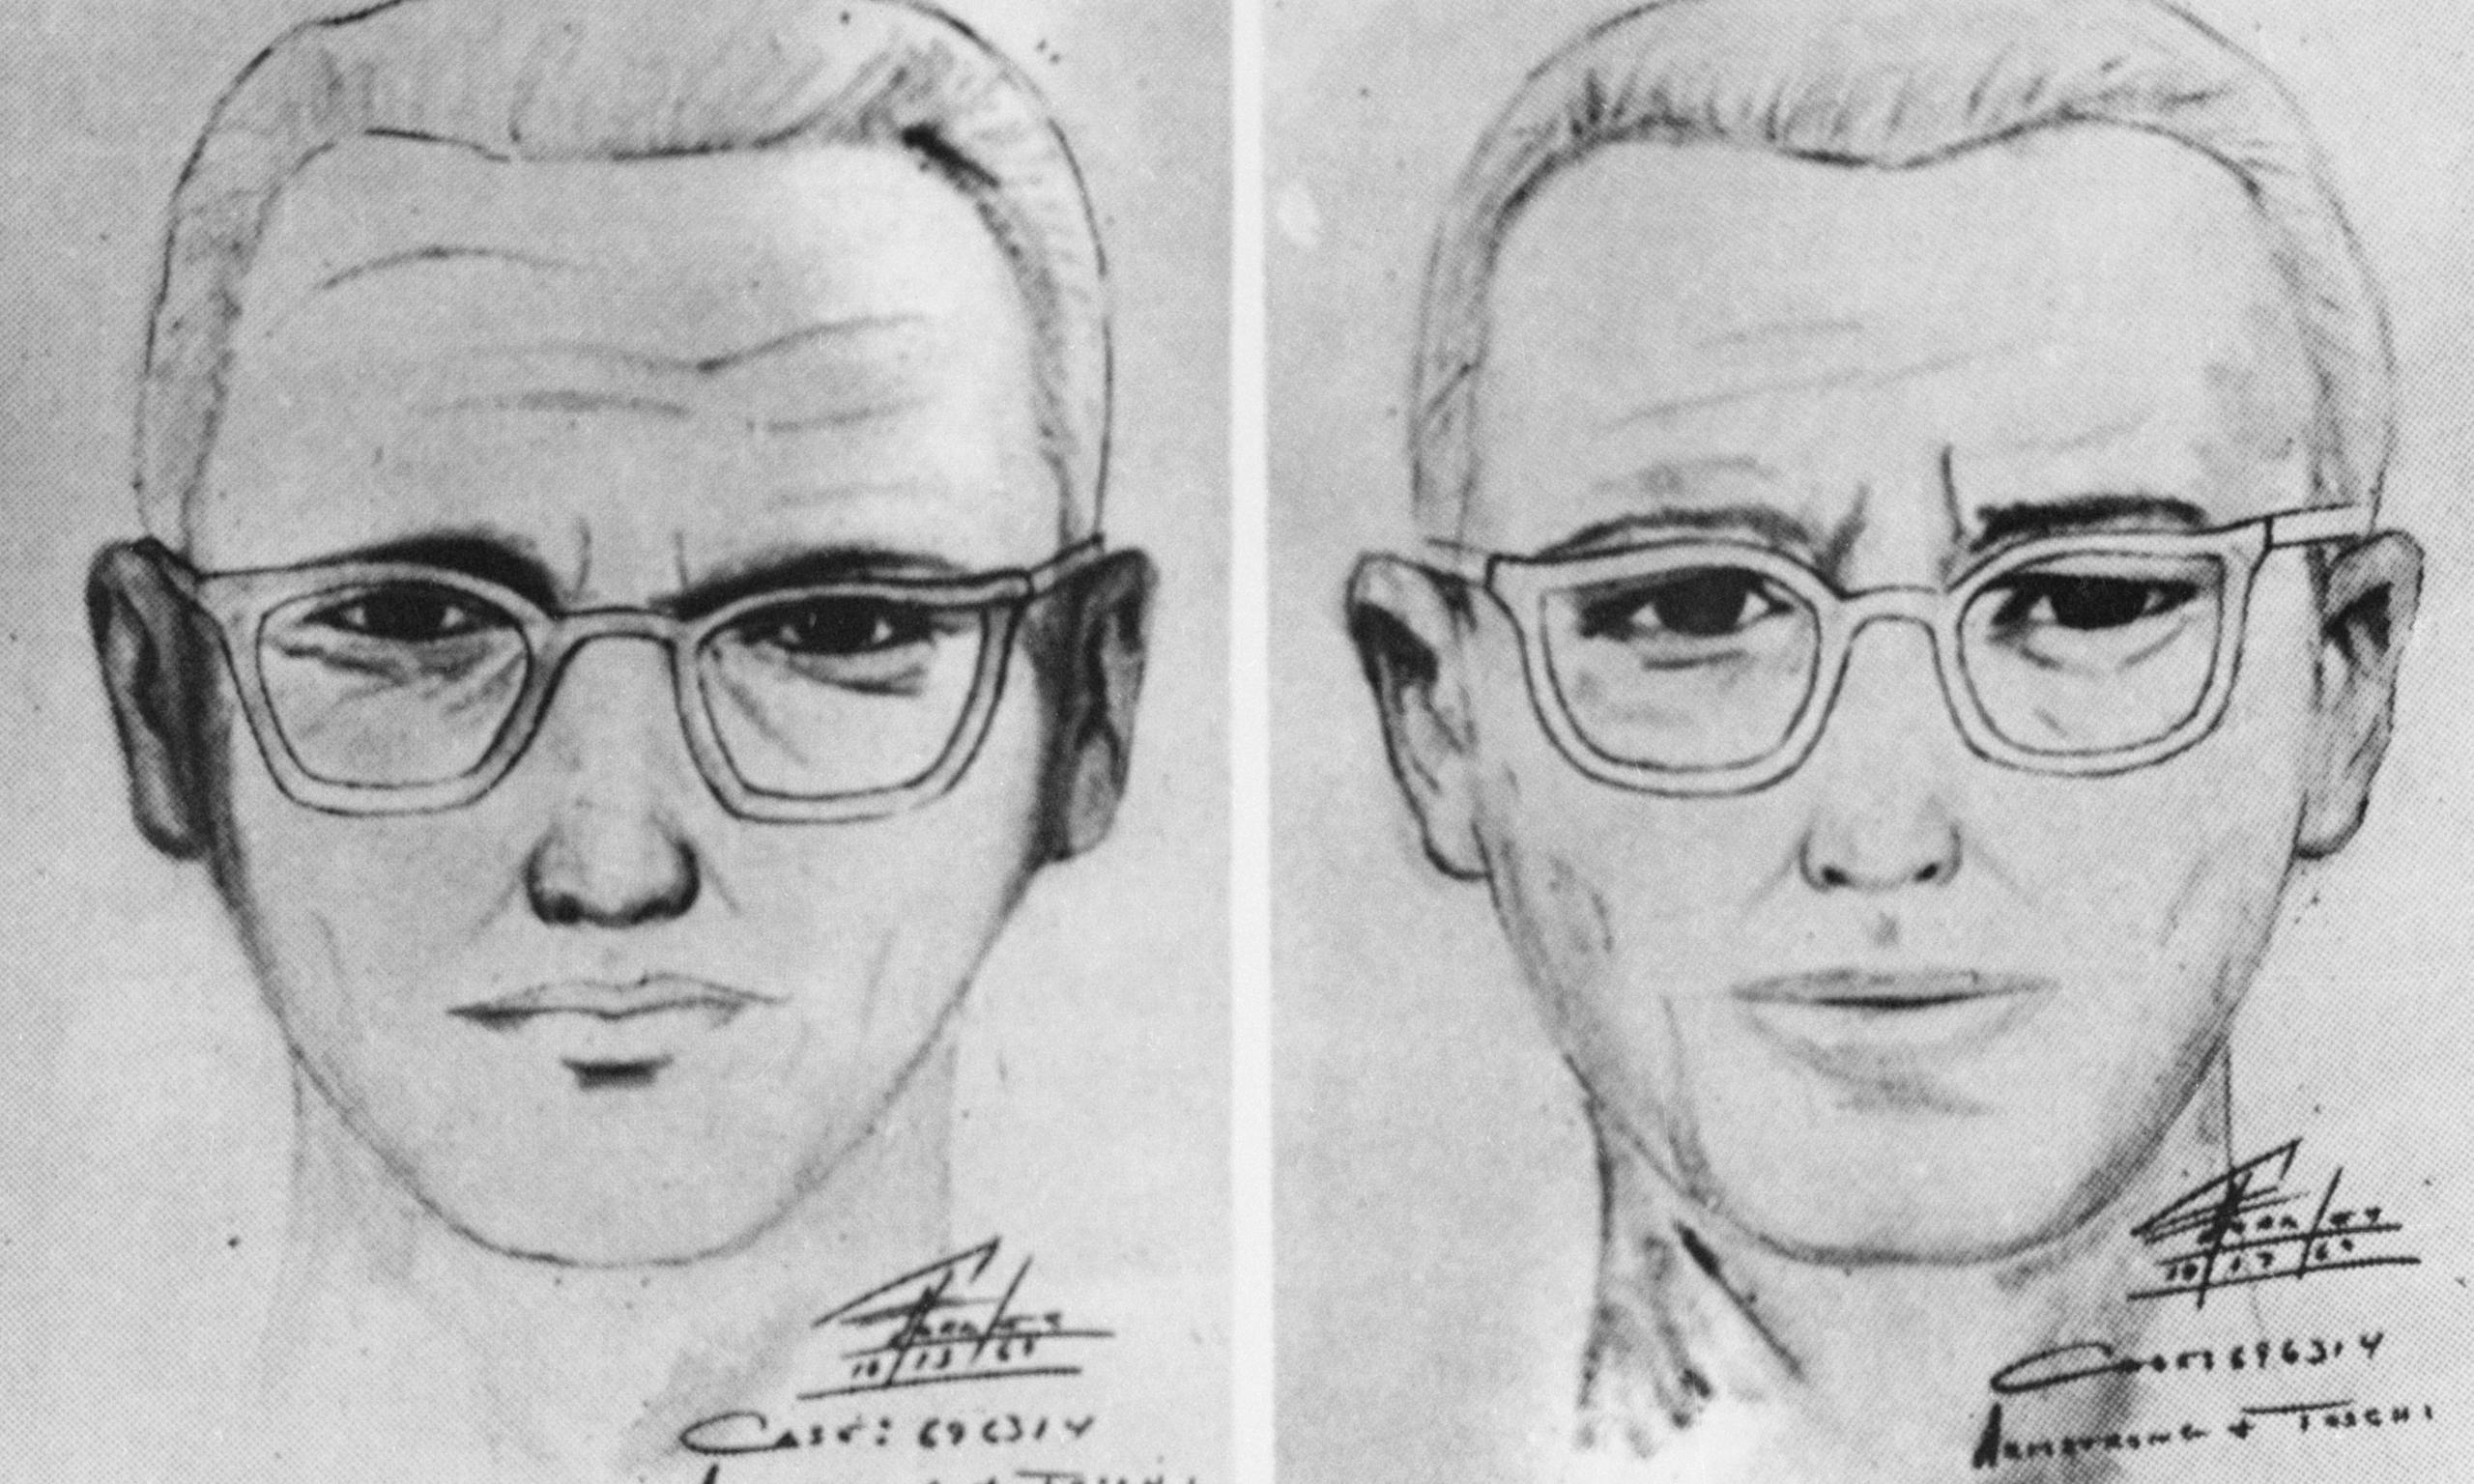 zodiac killer - photo #4